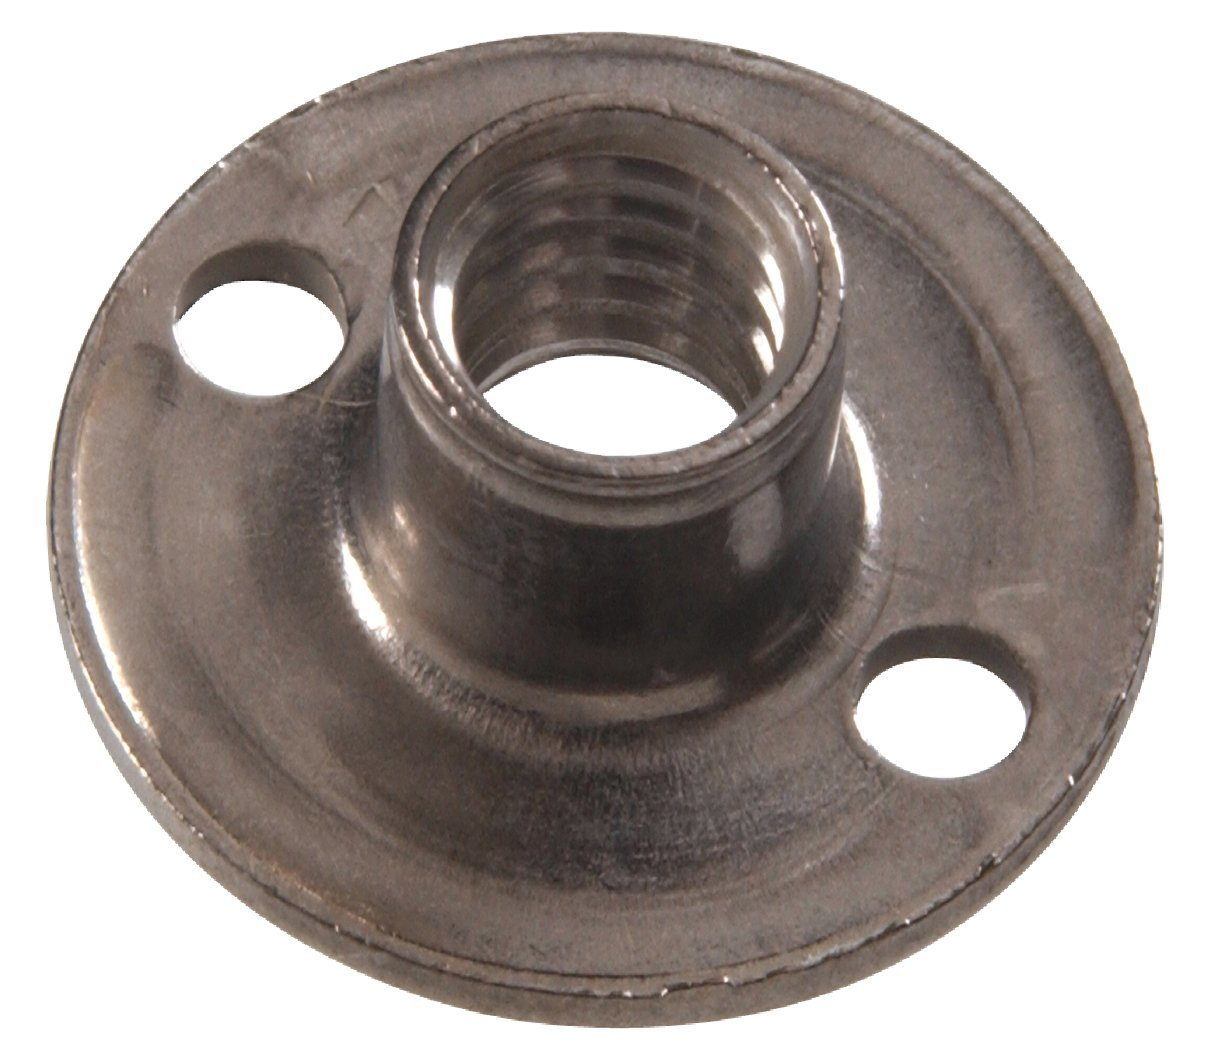 The Hillman Group The Hillman Group 4144 1/4-20 x 5/16 x 3/4 In. Stainless Steel Round Base Tee Nut (2 Packs of 15) by The Hillman Group